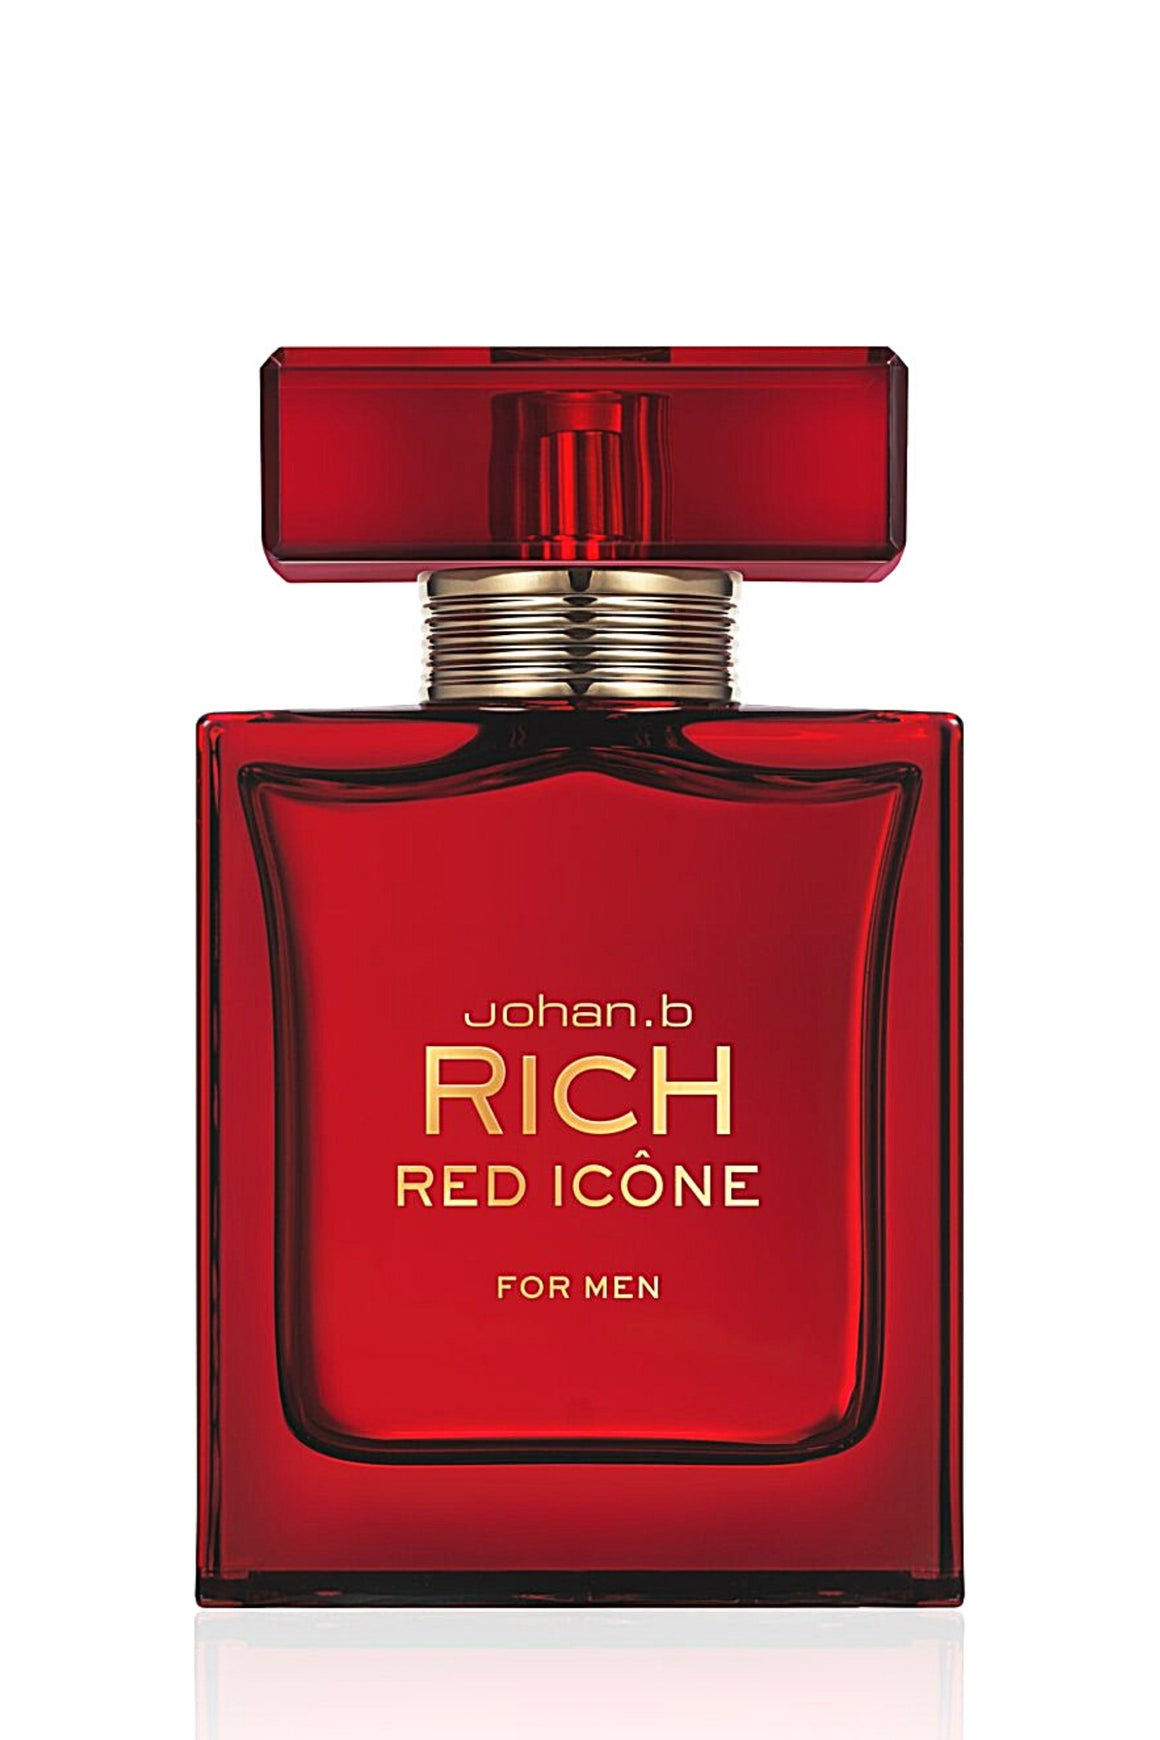 Johan B | Rich Icone Red EDP